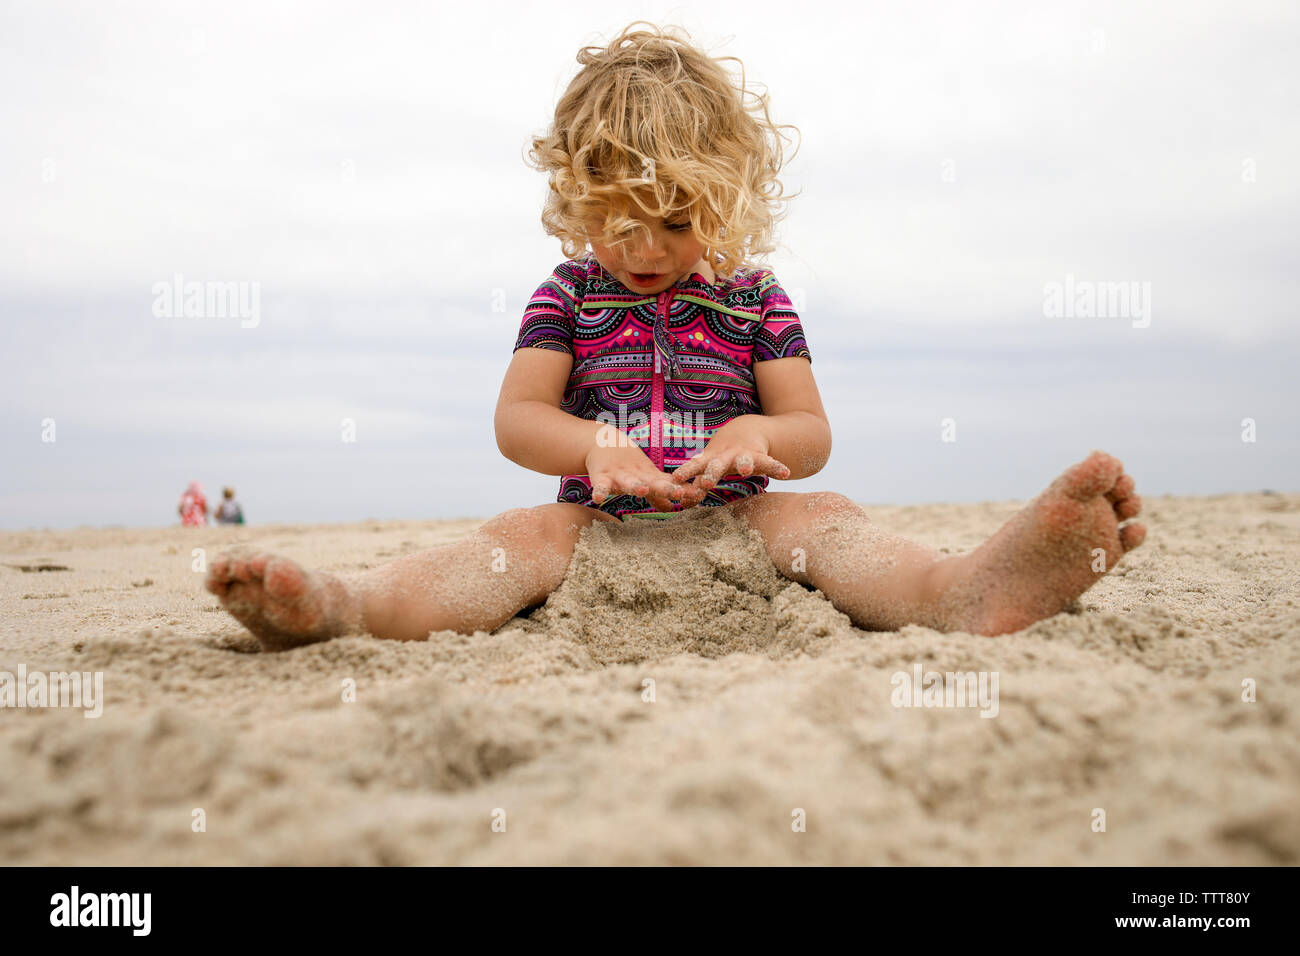 Full length of girl playing with sand at beach against sky - Stock Image